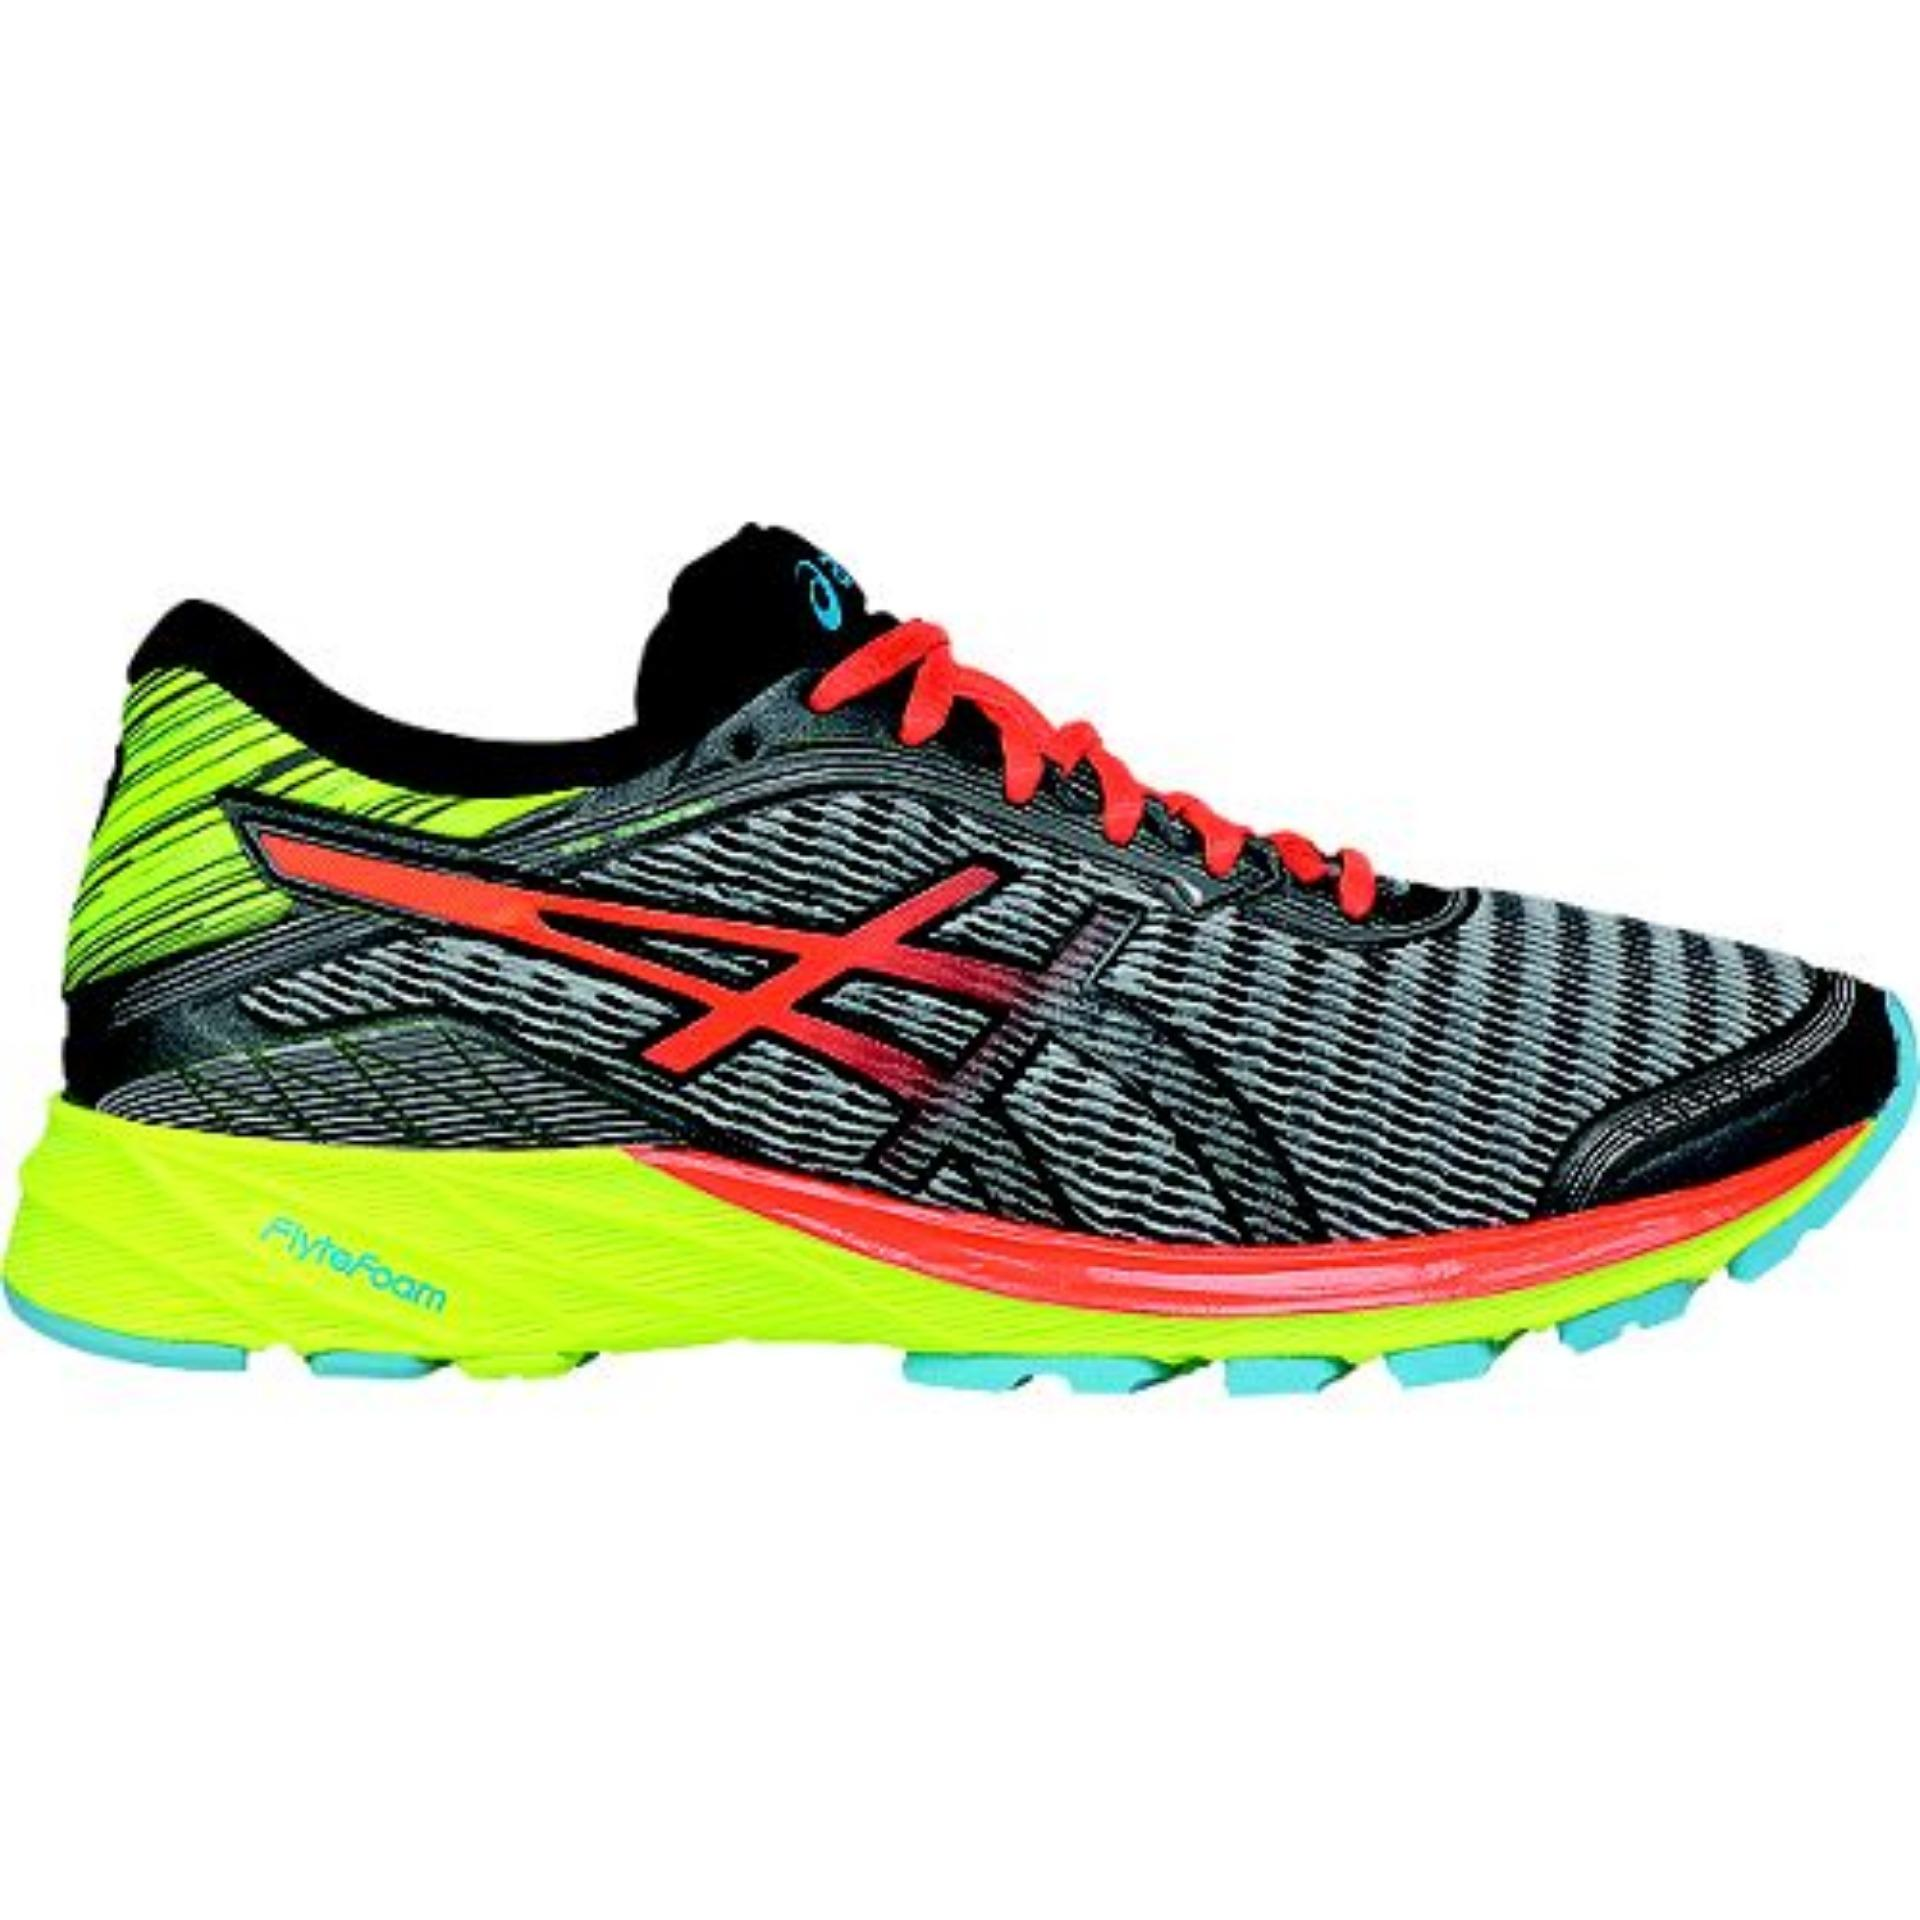 cheap for discount 0d7c0 2236b ASICS,DynaFlyte(MIDGREY FLASH CORAL SAFTY YELLOW)